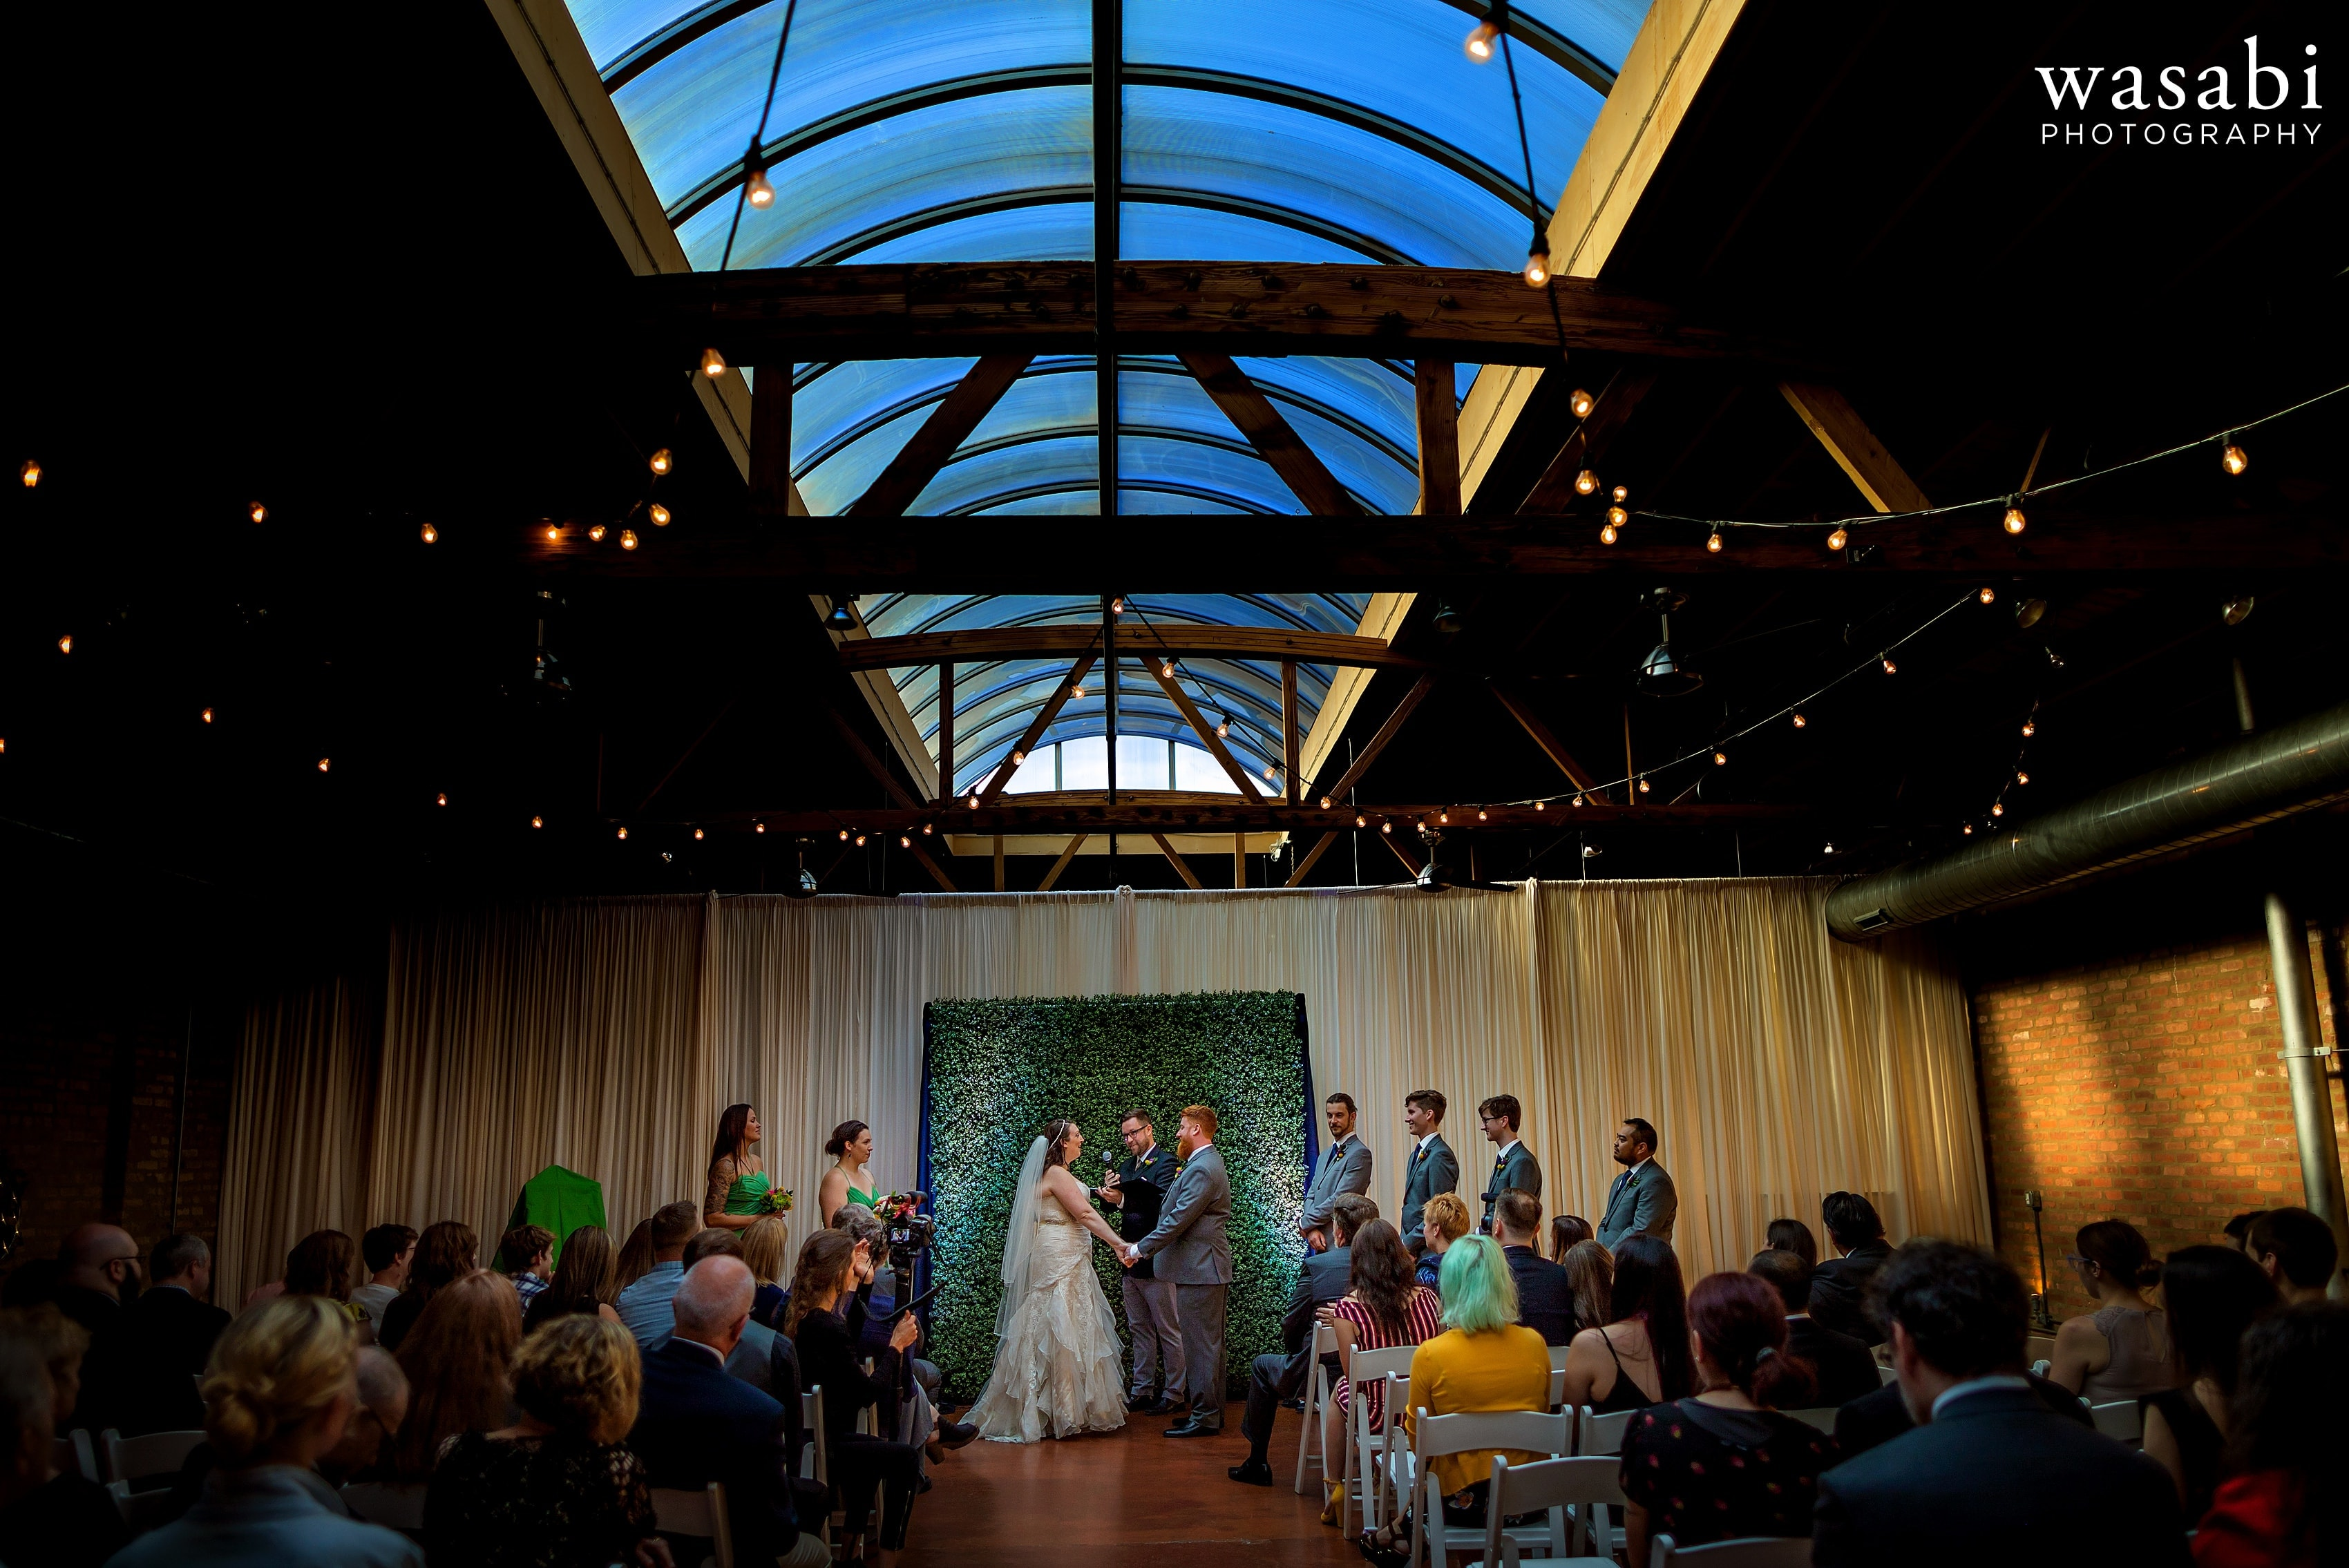 Wide angle view of the full room during a wedding ceremony Loft on Lake in Chicago